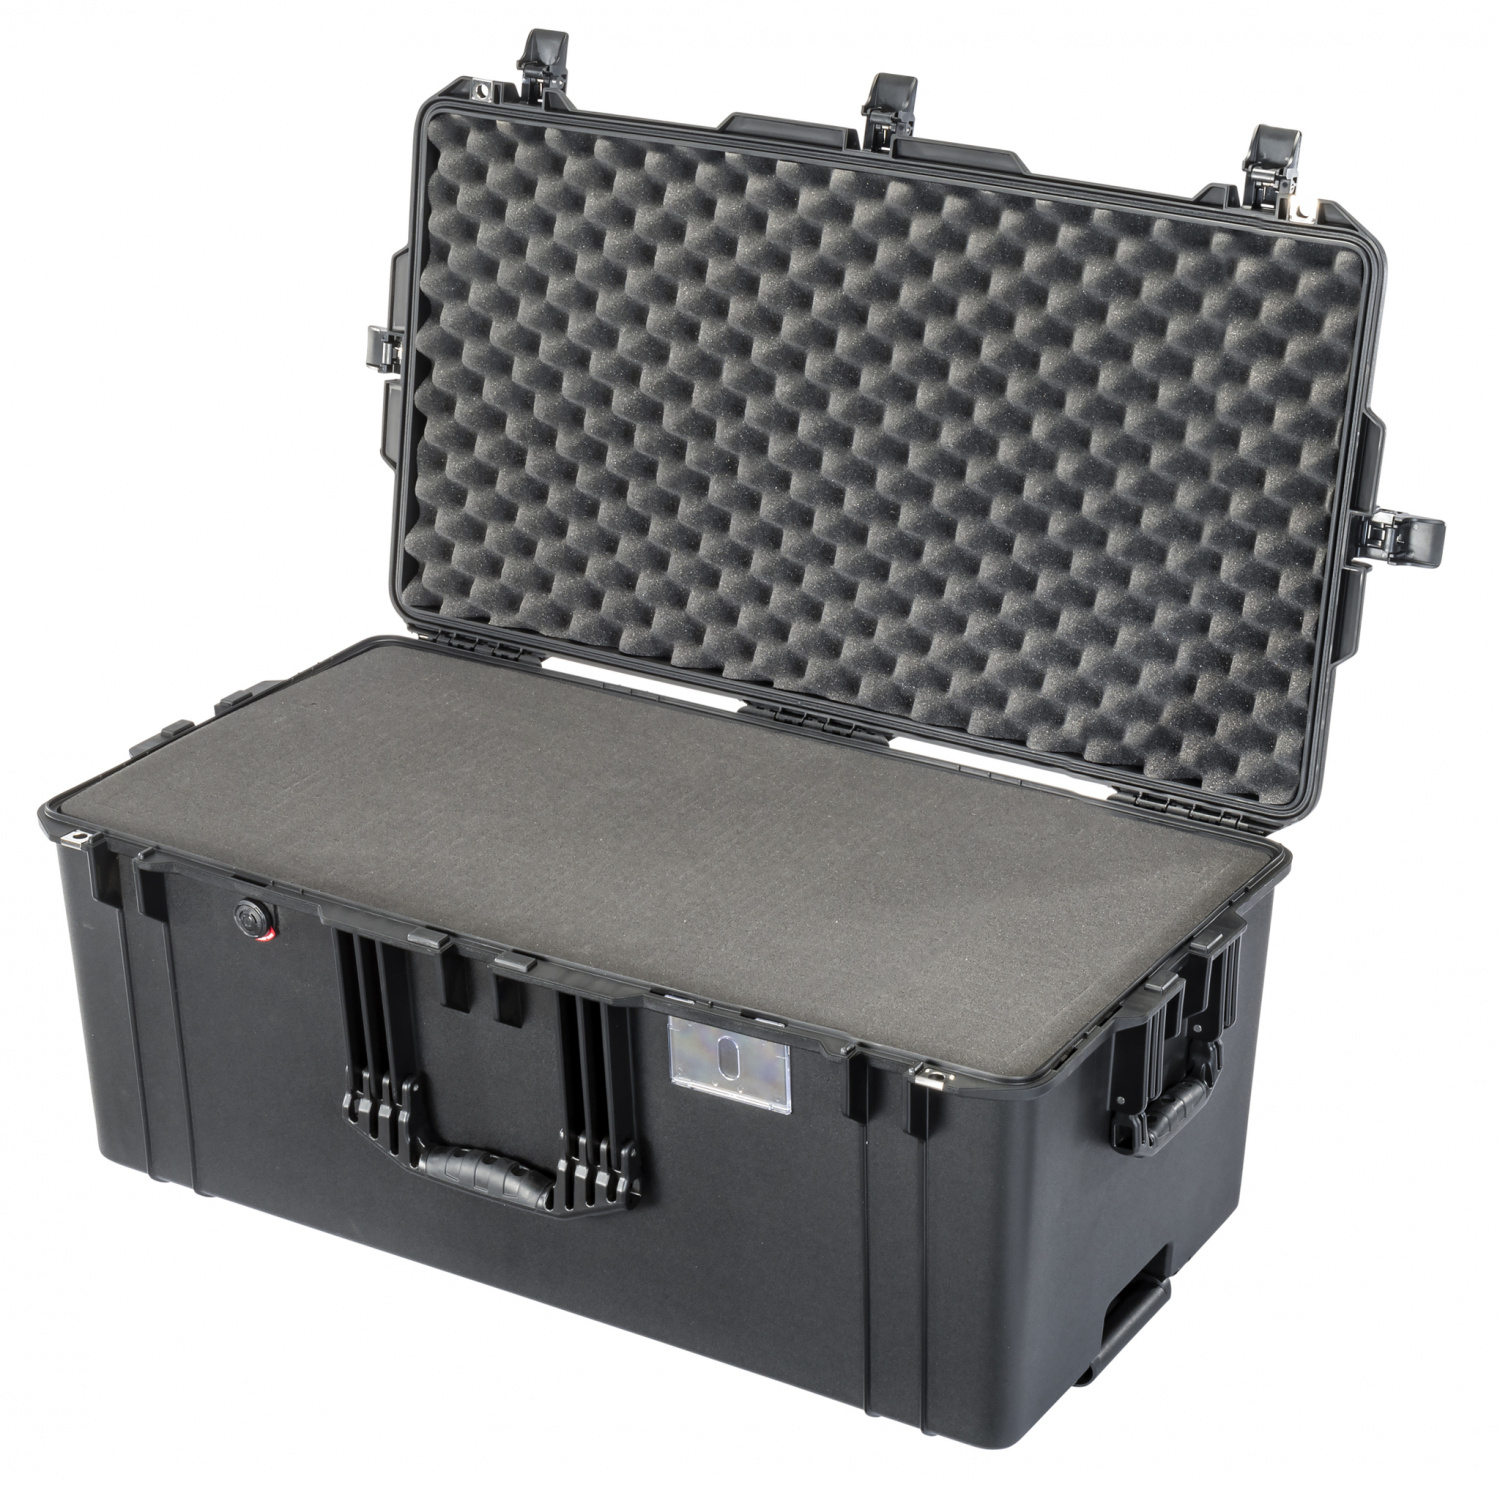 The Largest Pelican Air Case Ever Has Just Been Unveiled